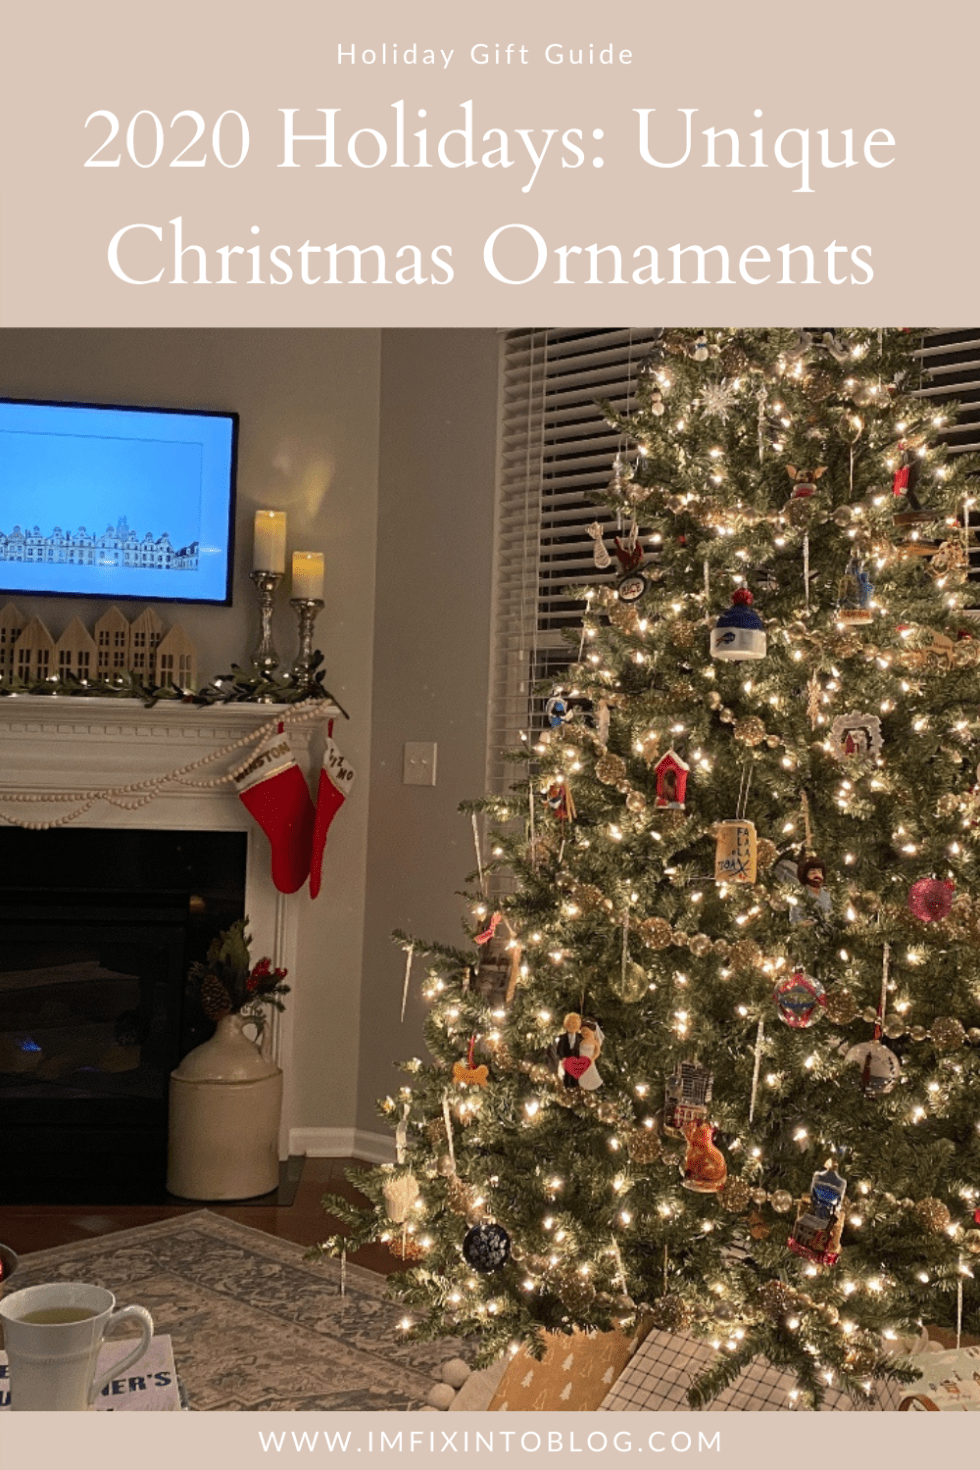 2020 Holidays: Unique Christmas Ornaments - I'm Fixin' To - @mbg0112 | Unique Christmas Ornaments by popular NC life and style blog, I'm Fixin' To: Pinterest image of a Christmas tree decorated with unique ornaments.